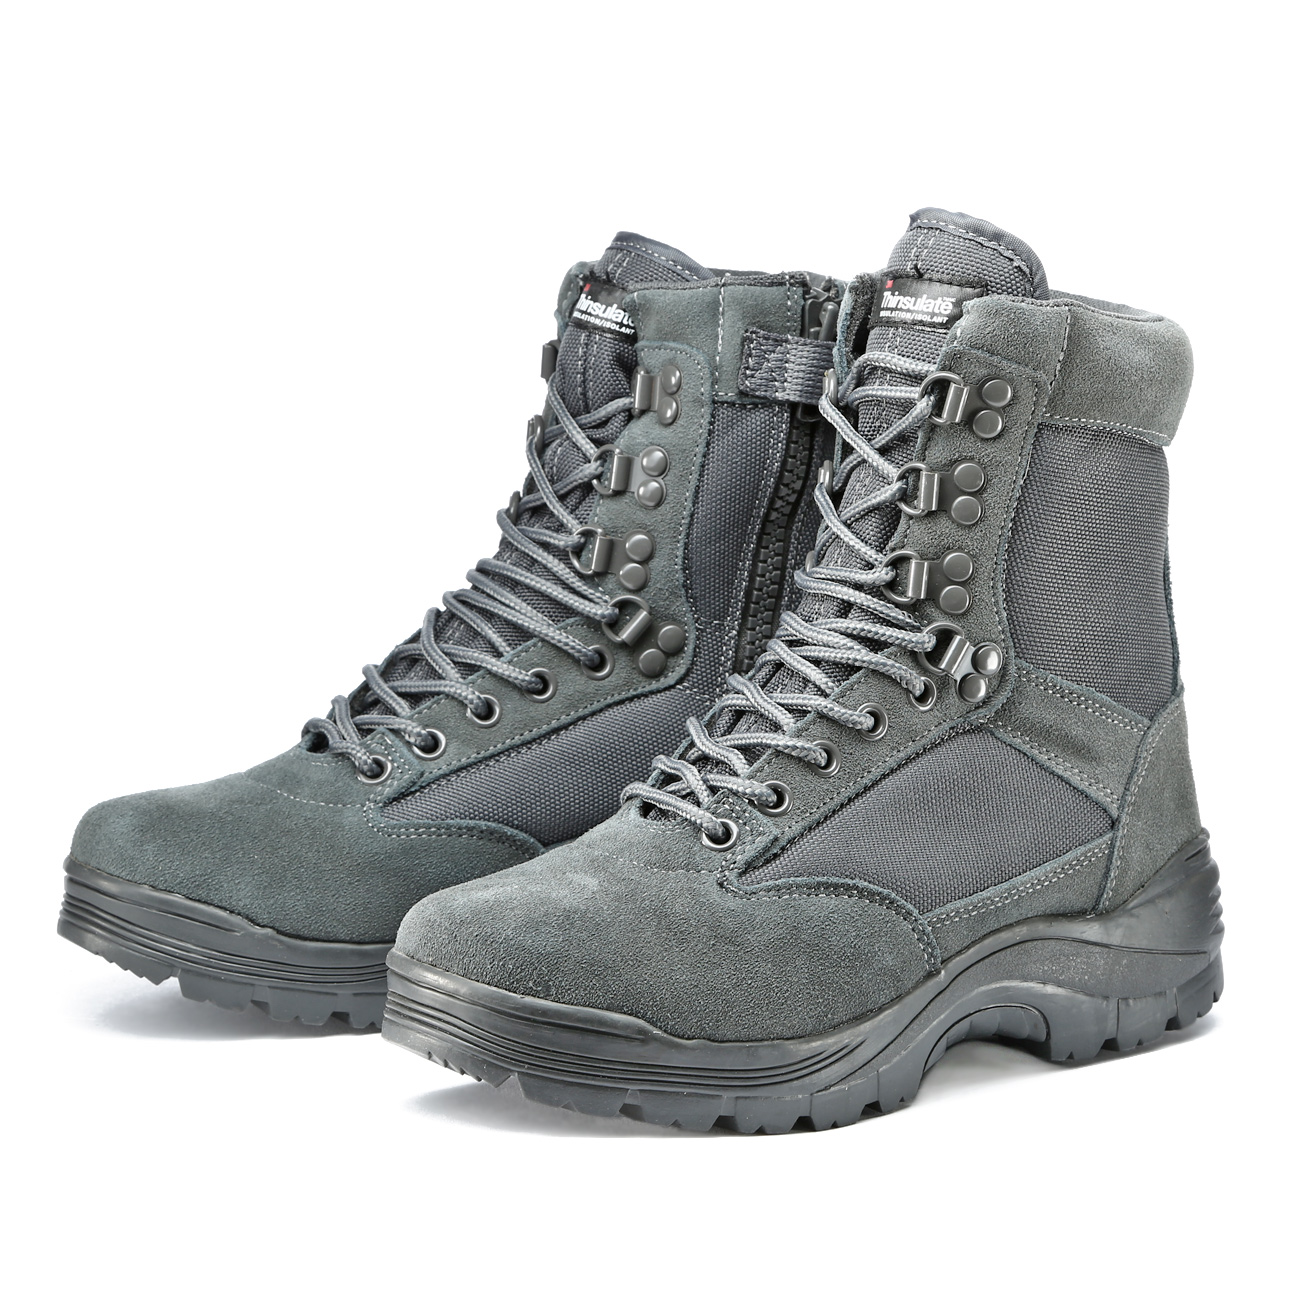 Mil-Tec Stiefel Tactical Boots YKK-Zipper urban grey 5